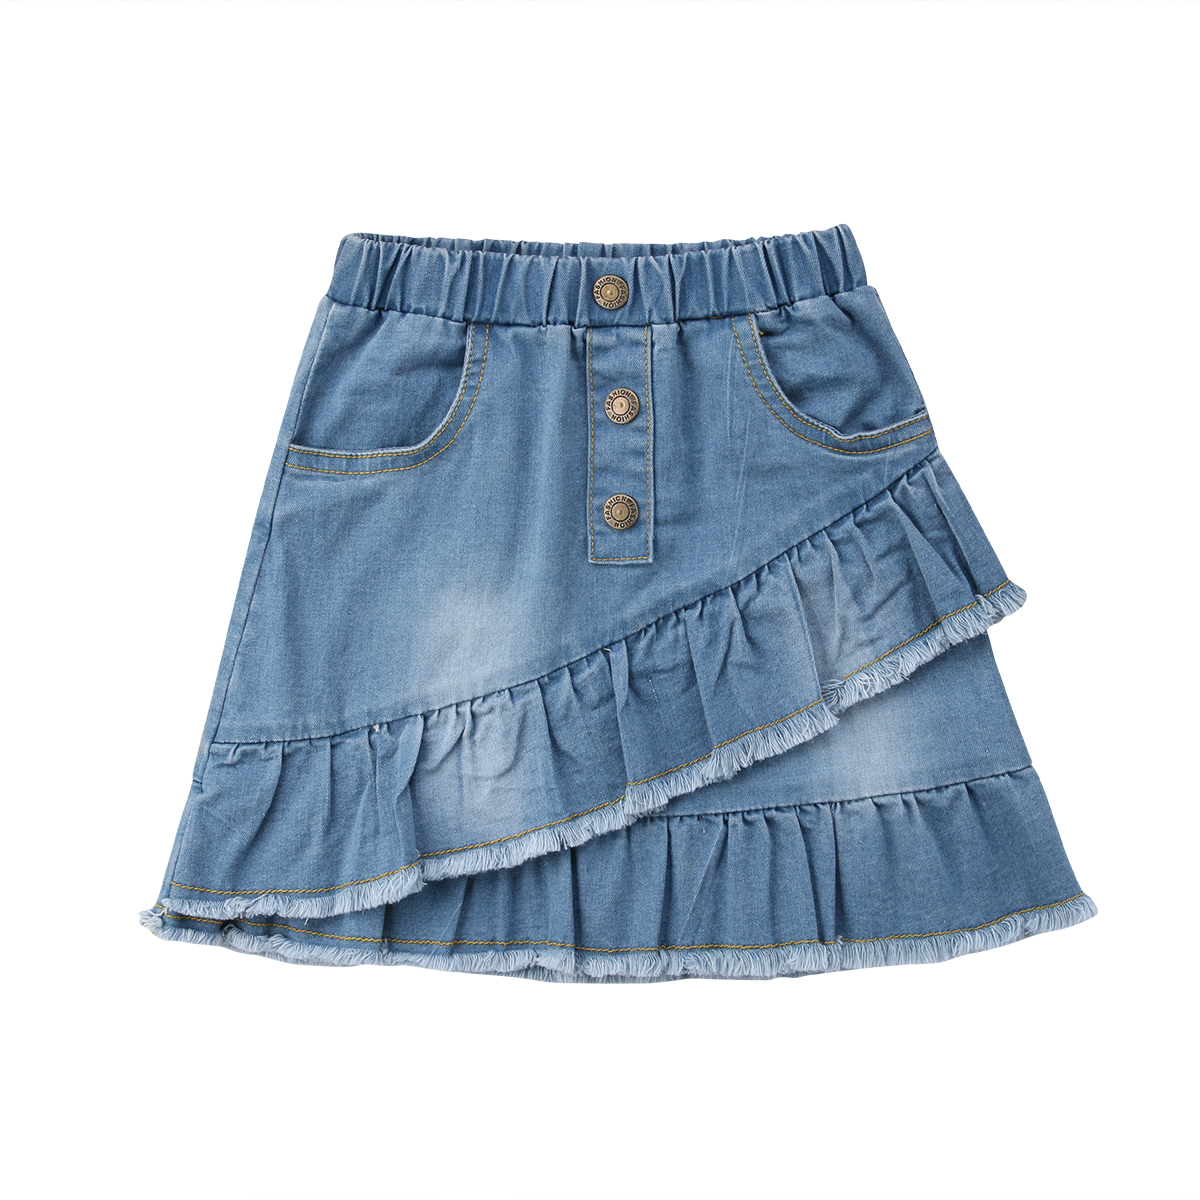 Childrens Place and Old Navy Long Denim Skirt Converted  Jeans Sizes**  4-14